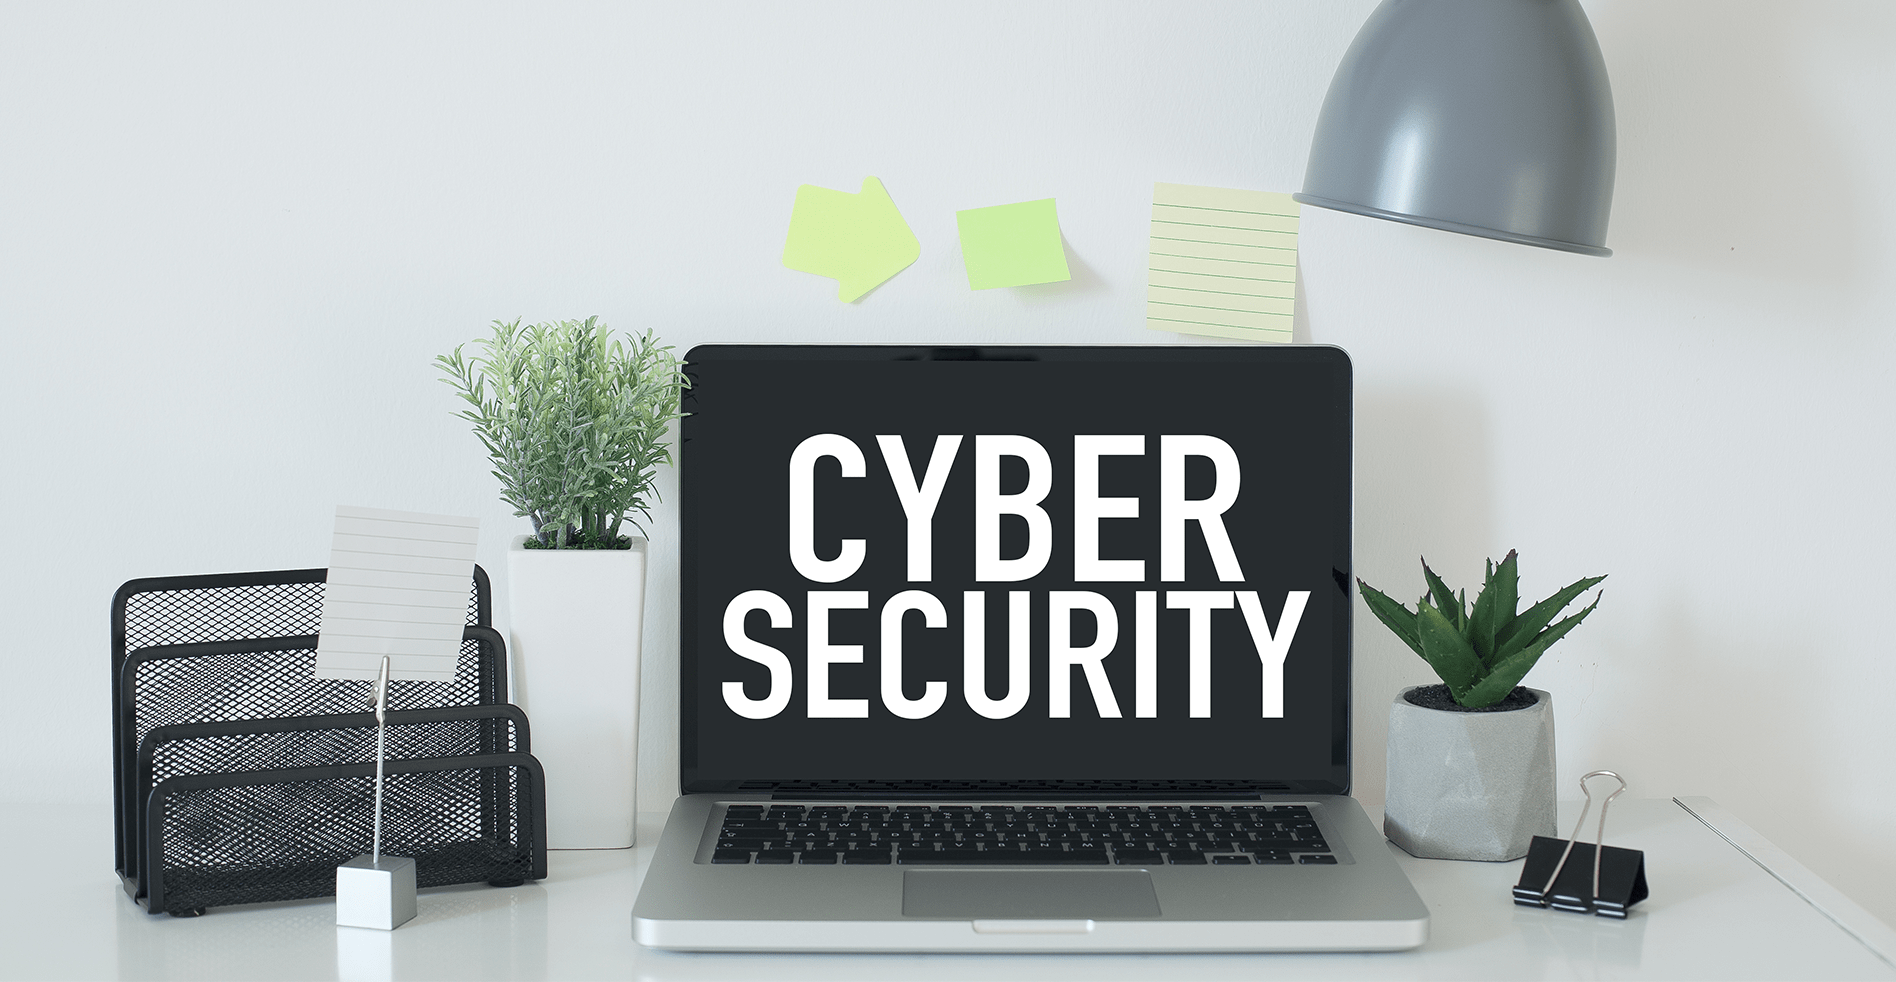 cyber security for your business image